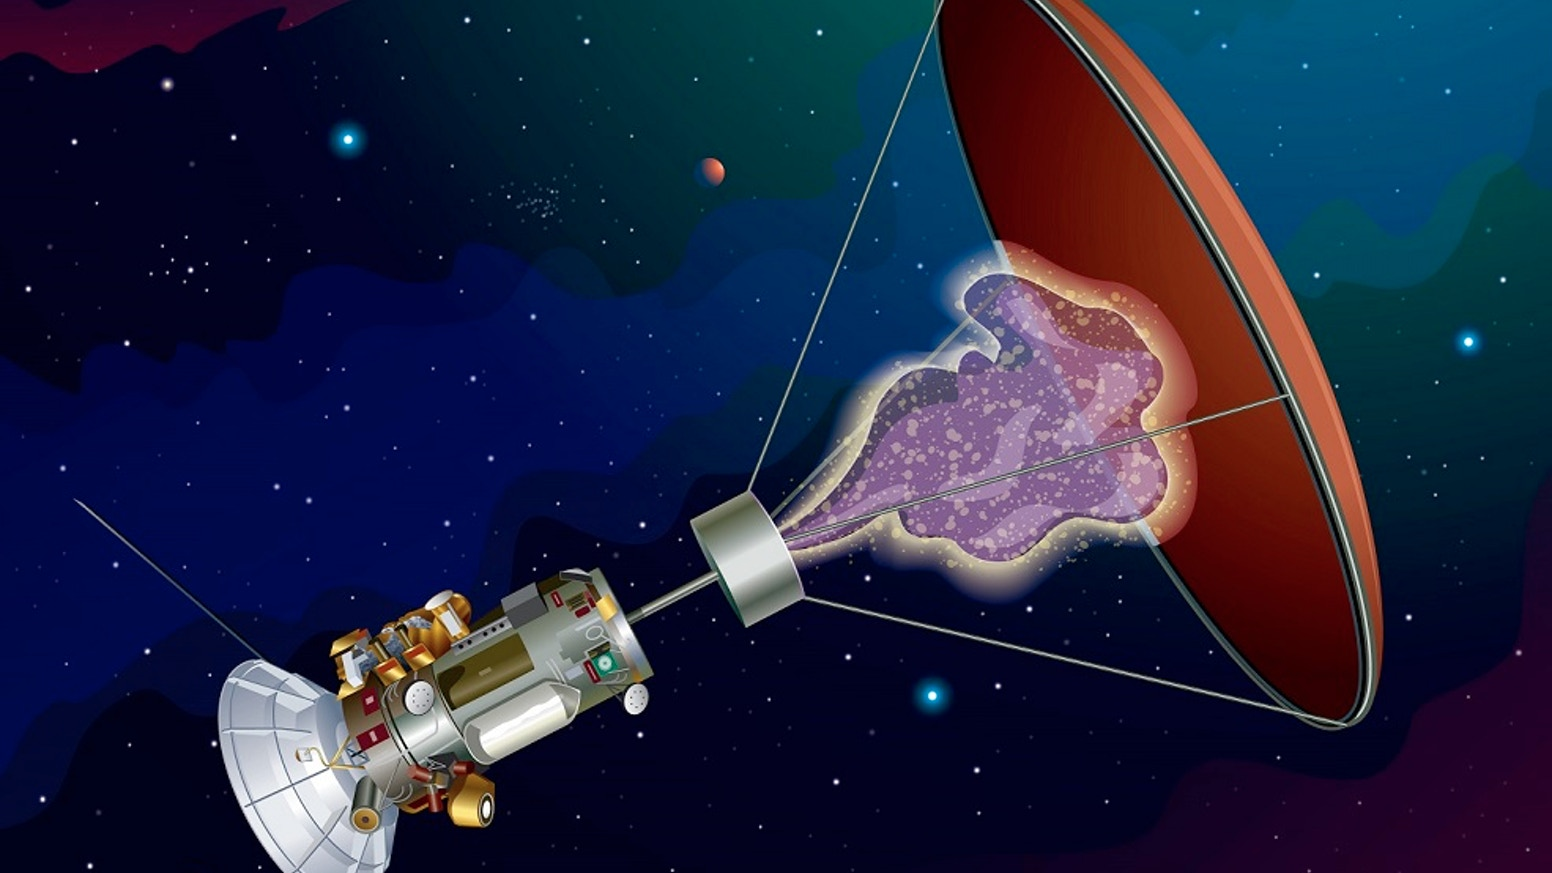 We have designed an antimatter thruster capable of reaching the nearest star.  A plan for antimatter fuel production is now needed.